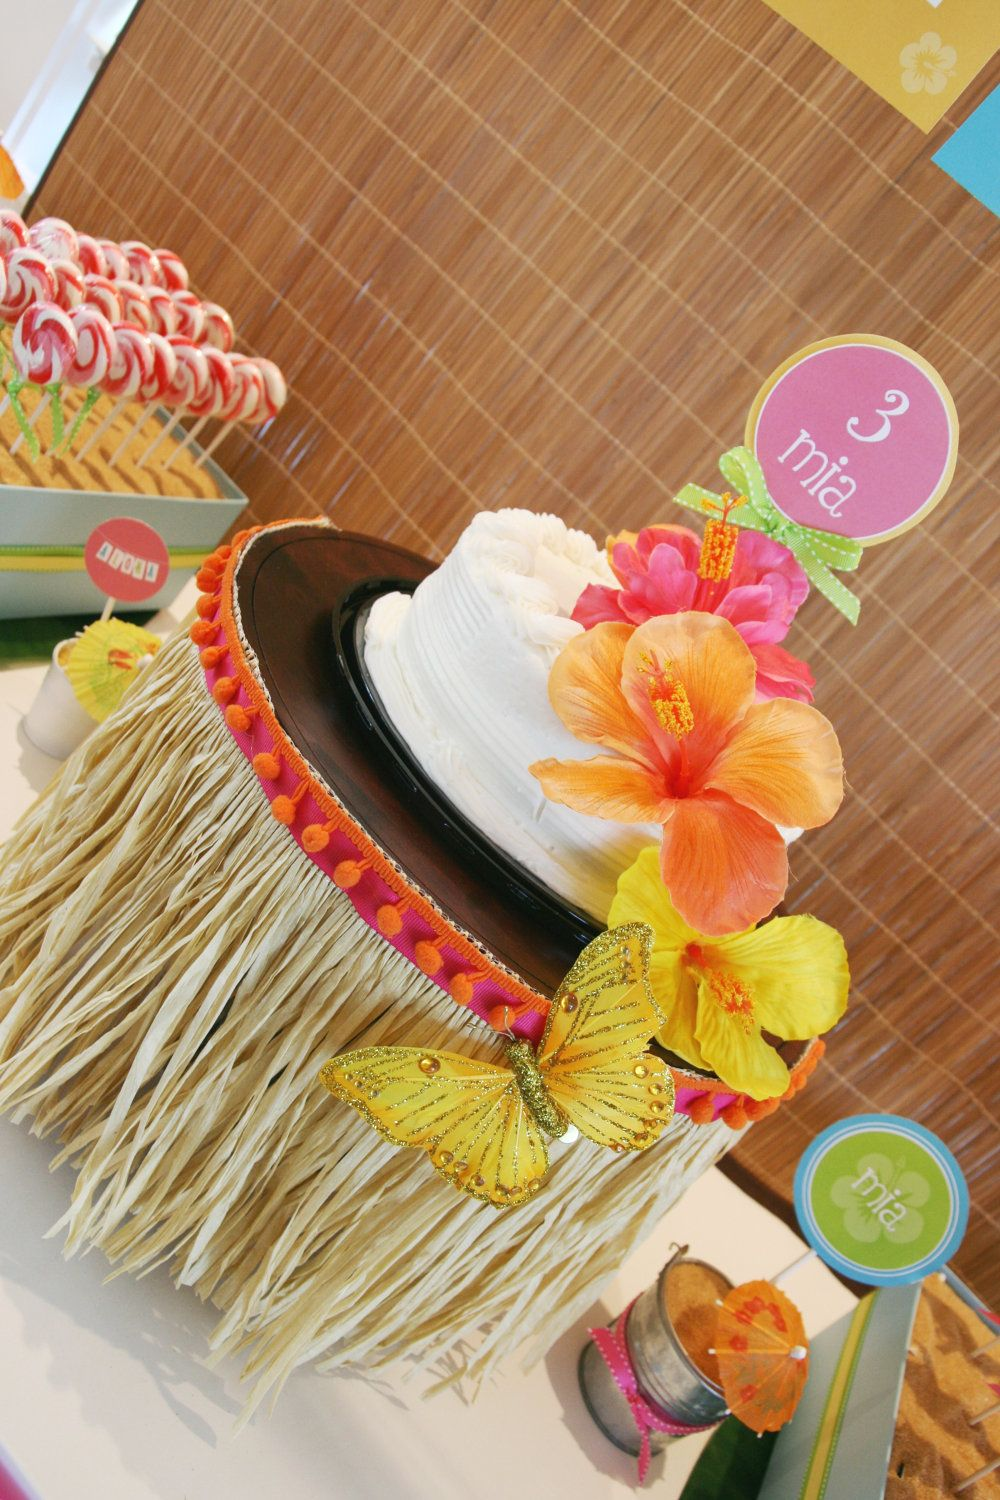 The Simplest Of Cakes Dressed Up With A Grass Skirt Makes